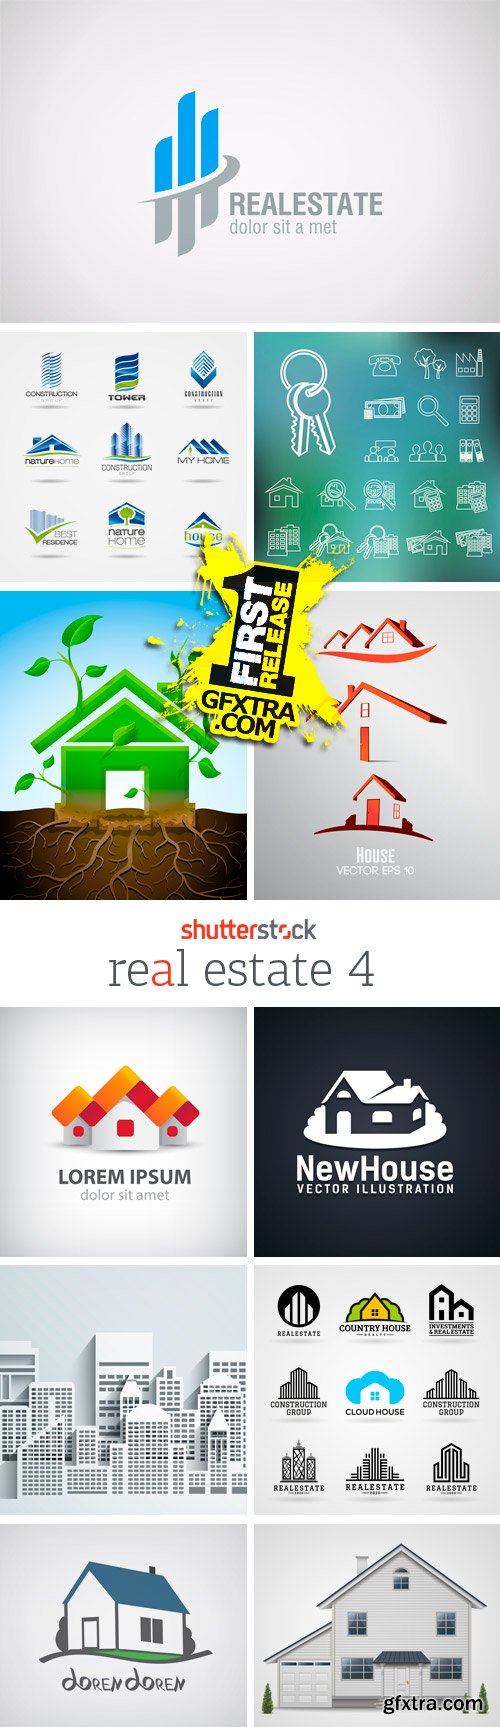 Amazing SS - Real Estate 4, 25xEPS